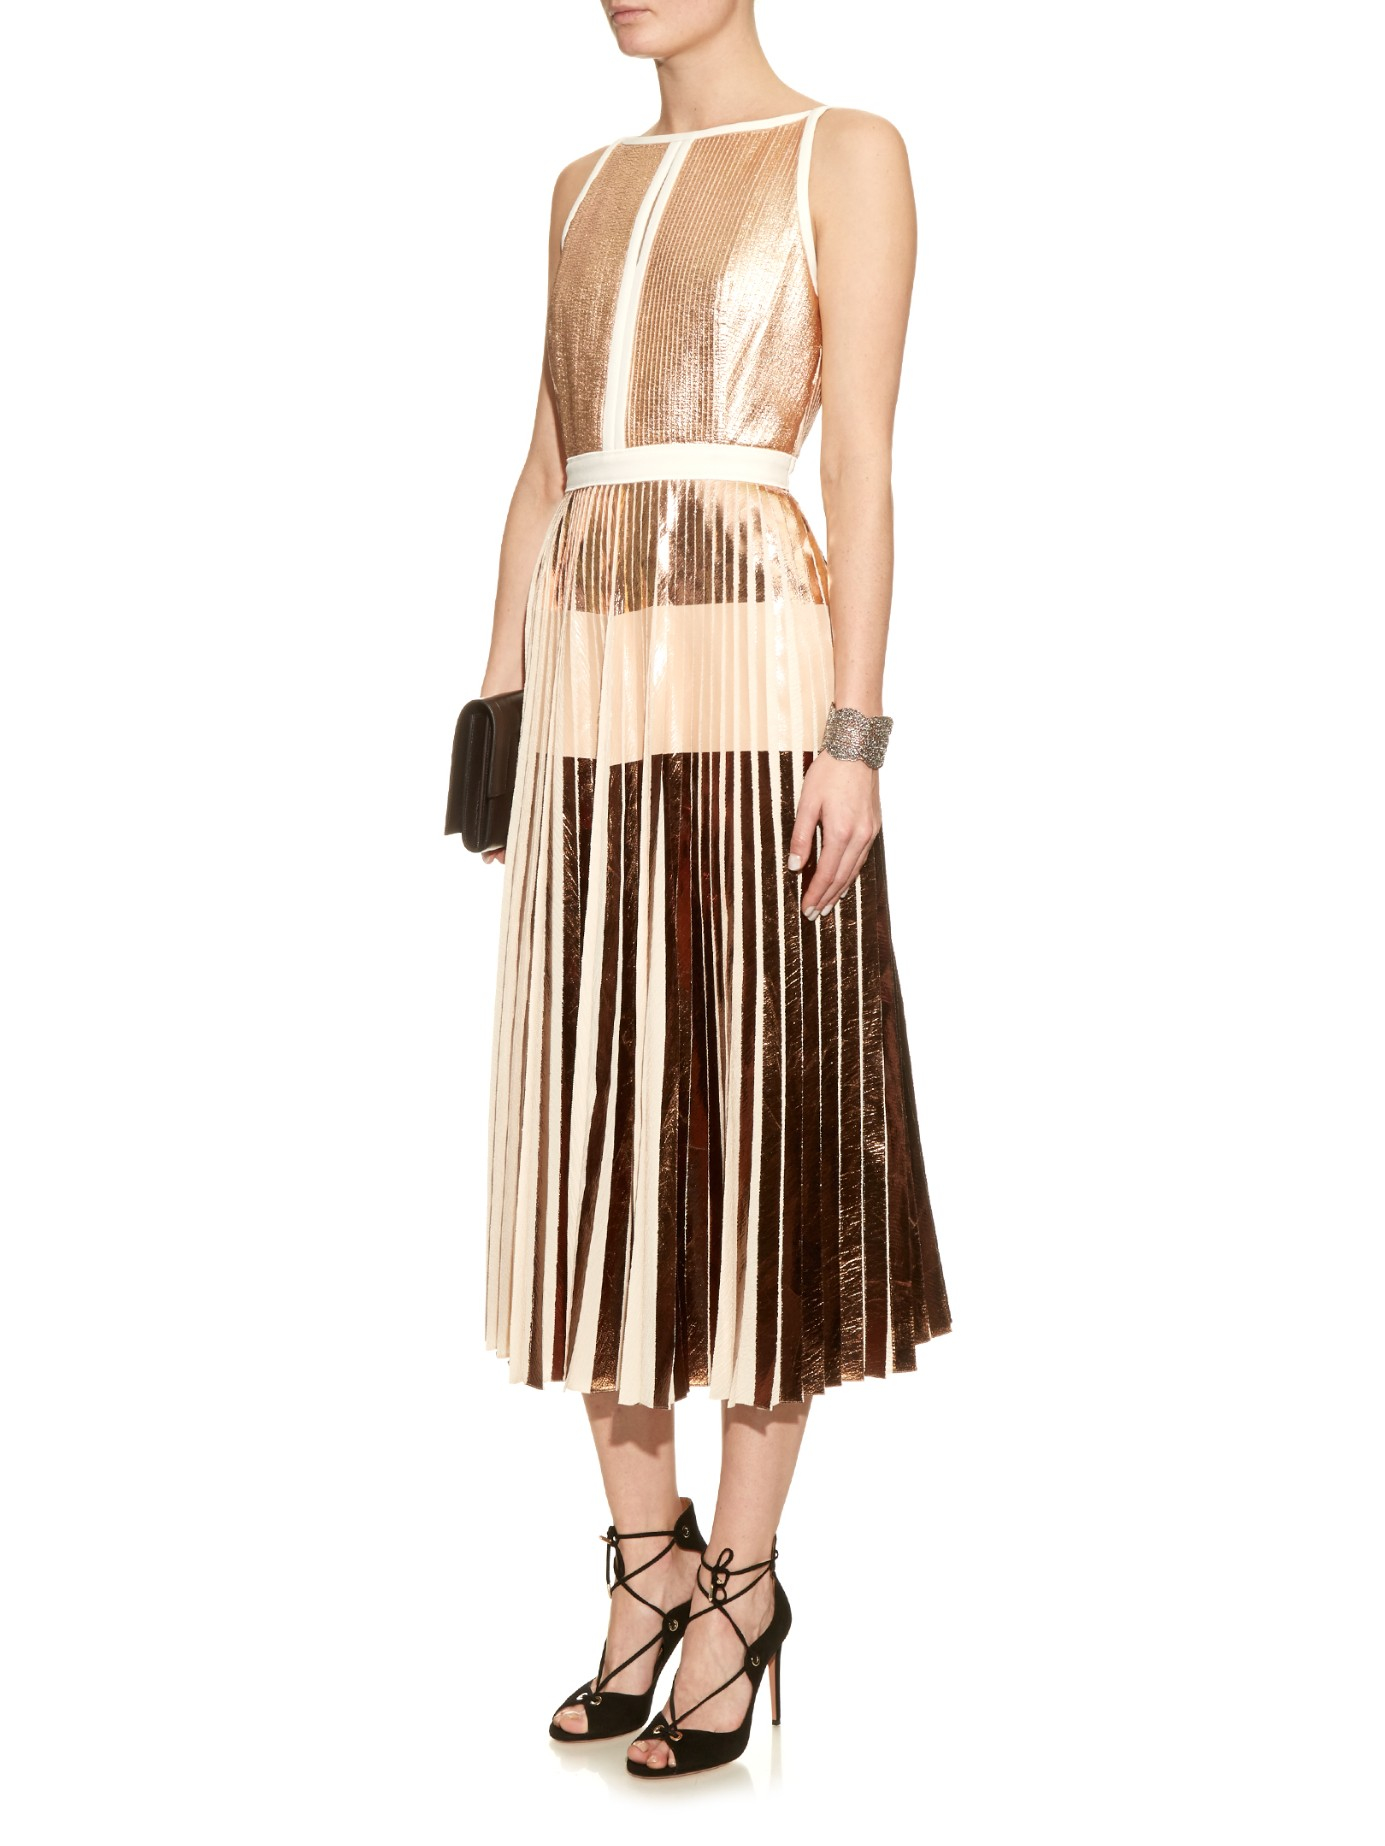 Discount Cheap Prices Cutout Pleated Lamé Midi Dress Proenza Schouler For Cheap Price 5dhV7nD